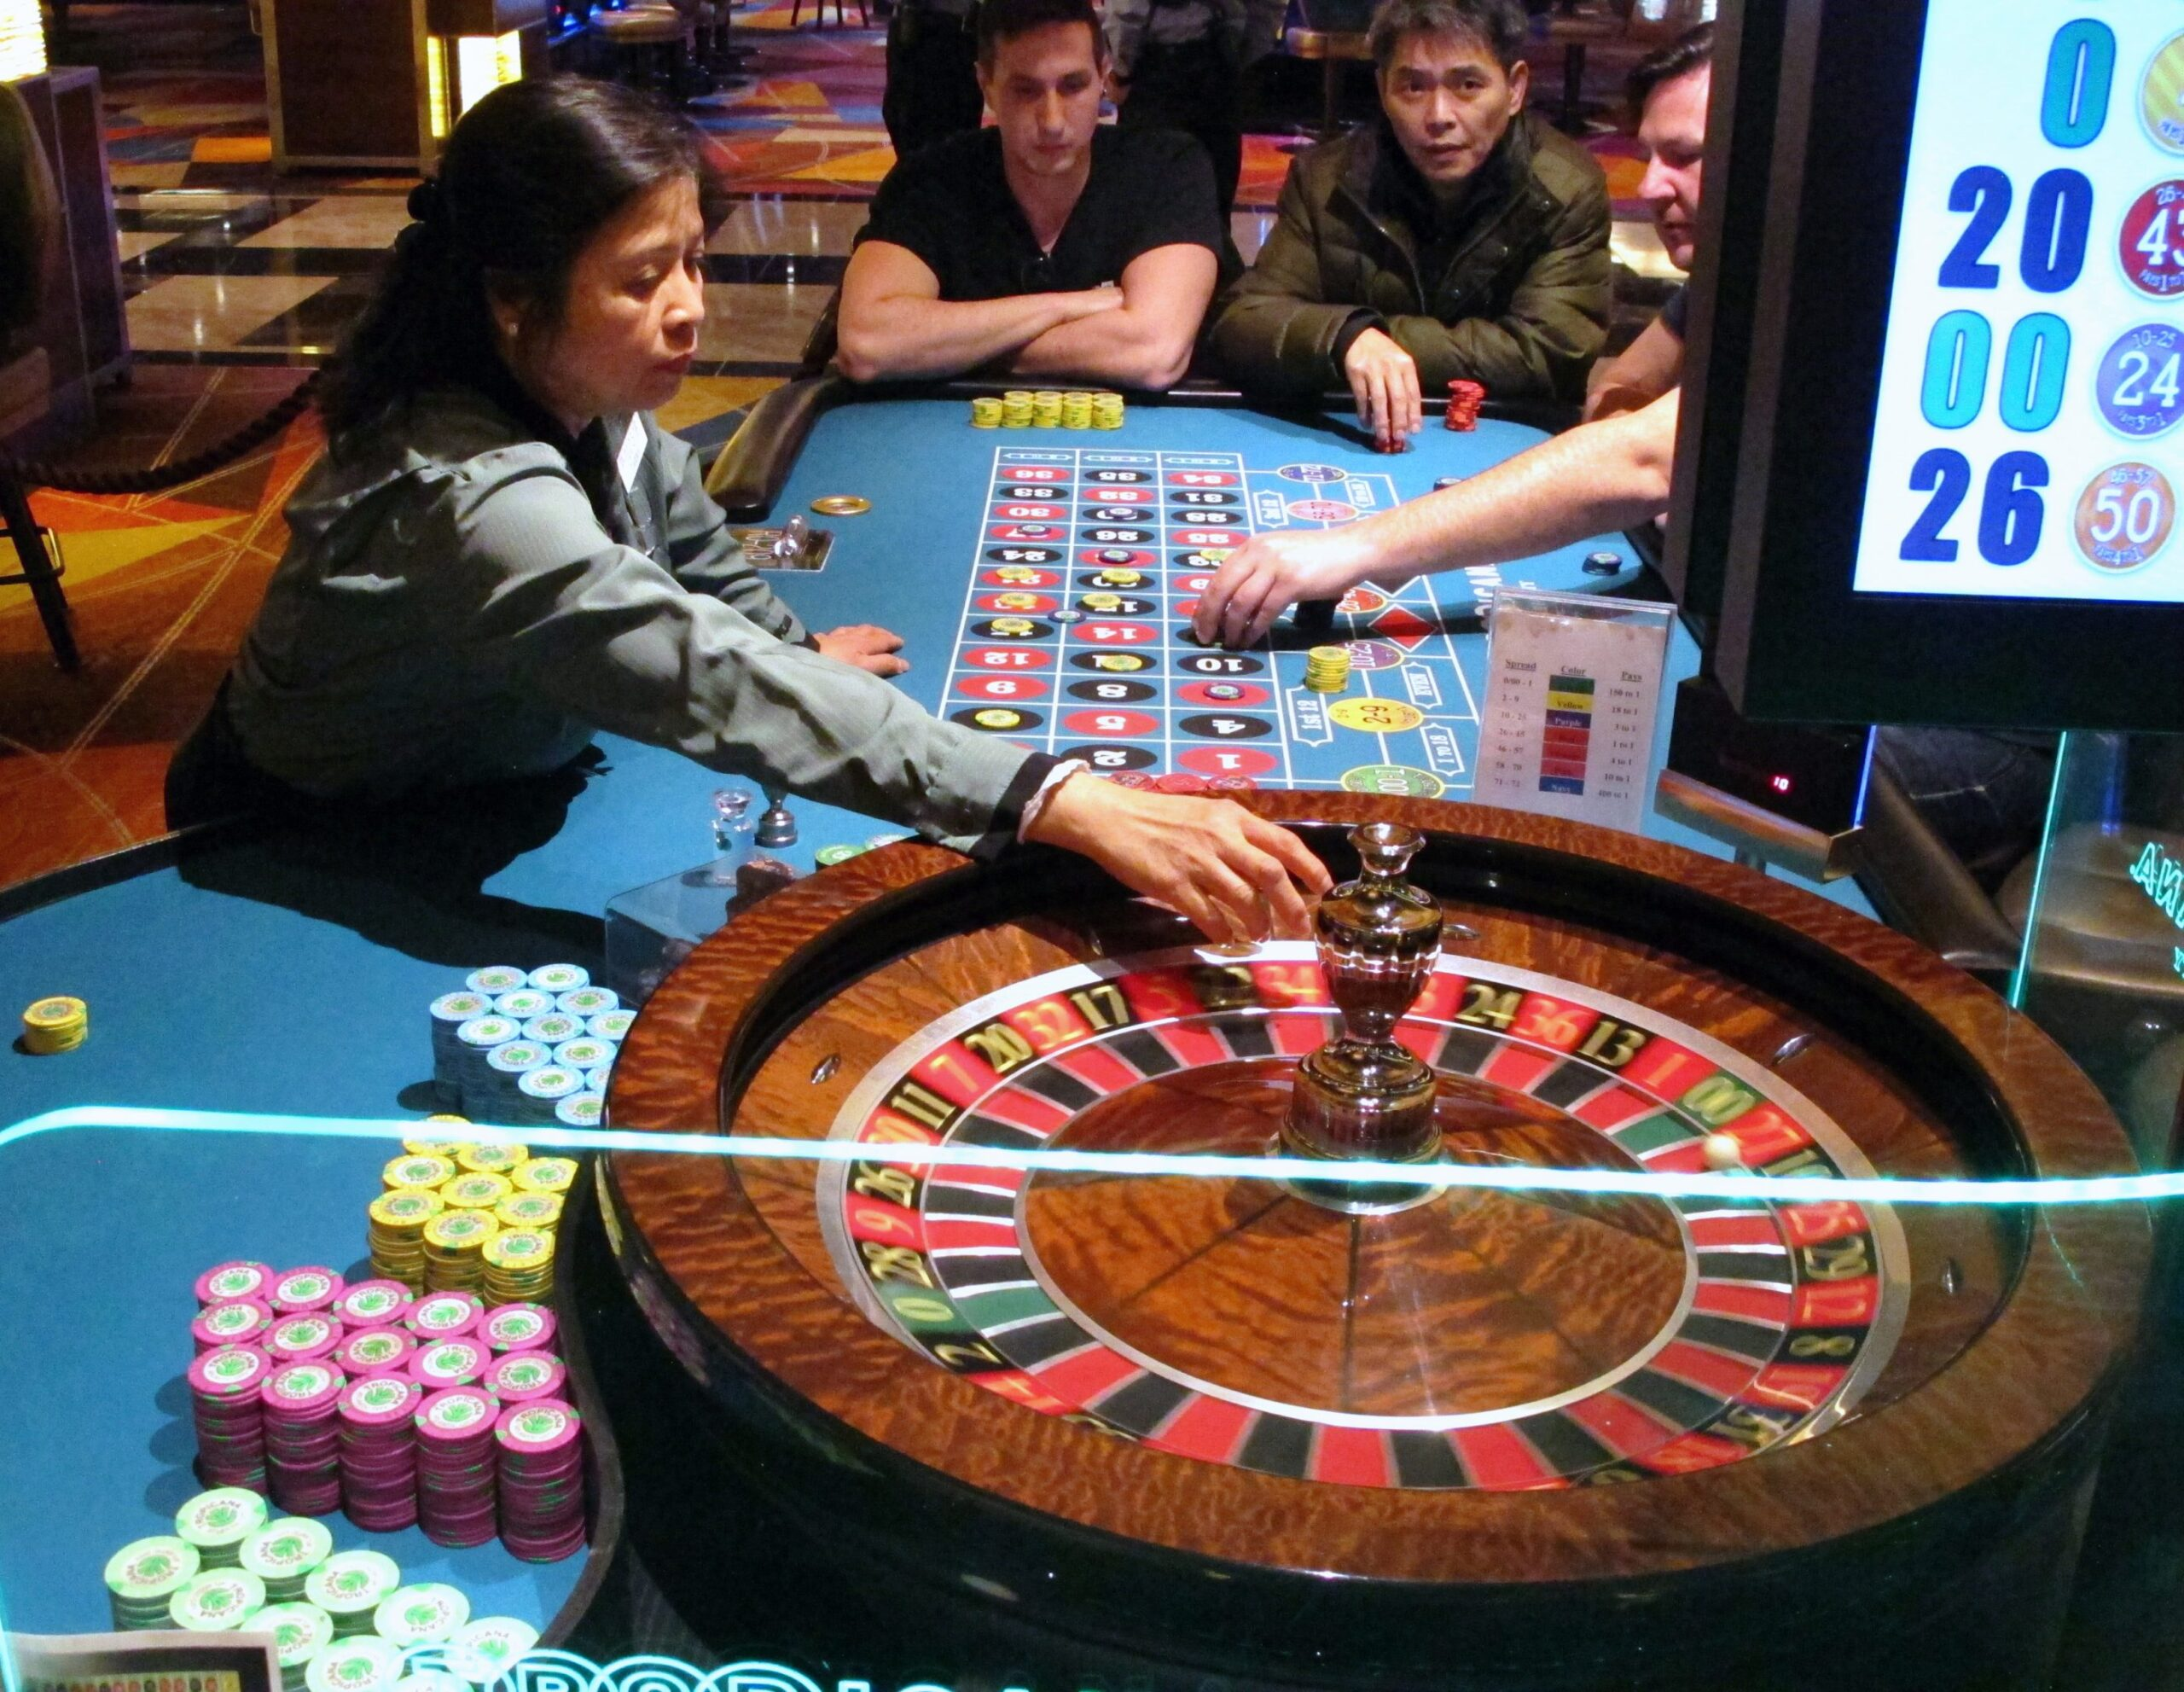 Strong Emotions And Casino Gambling A Dangerous Mix